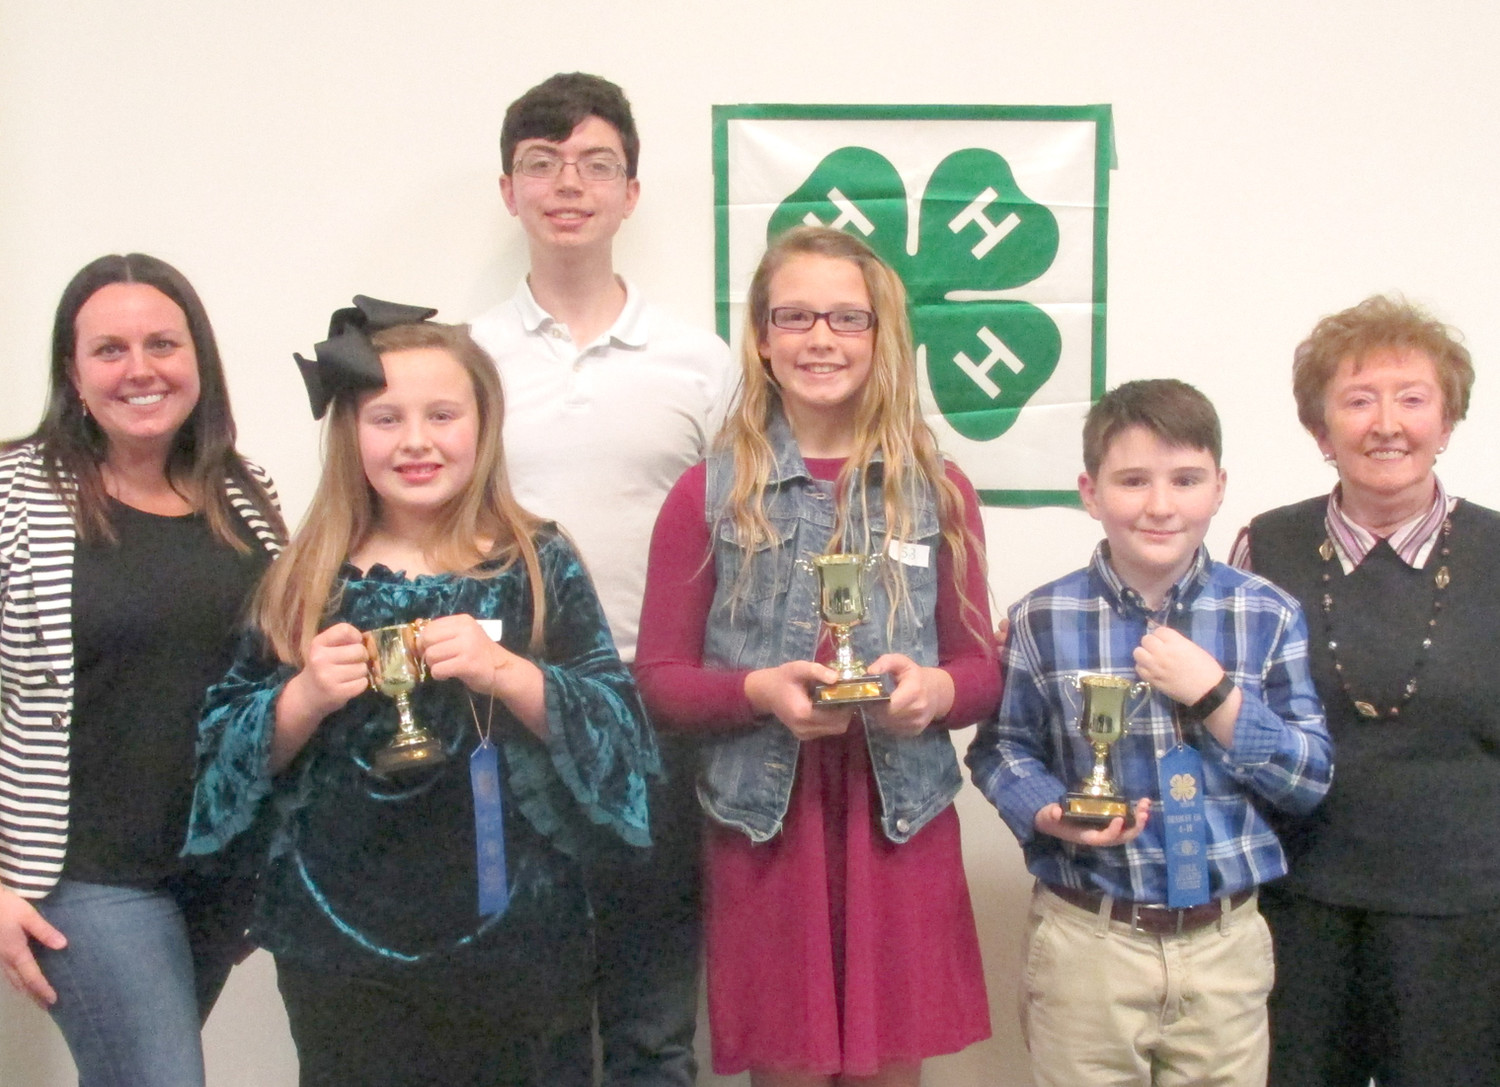 Bradley County 4-H Sub County Public Speaking winners for fifth grade were Lynlee Hodge from Park View Elementary; Ryann Presswood from Tennessee Christian Preparatory School; Parker White from Park View Elementary. Judges were Jessa Miller, front left; and Samuel Hood, back.